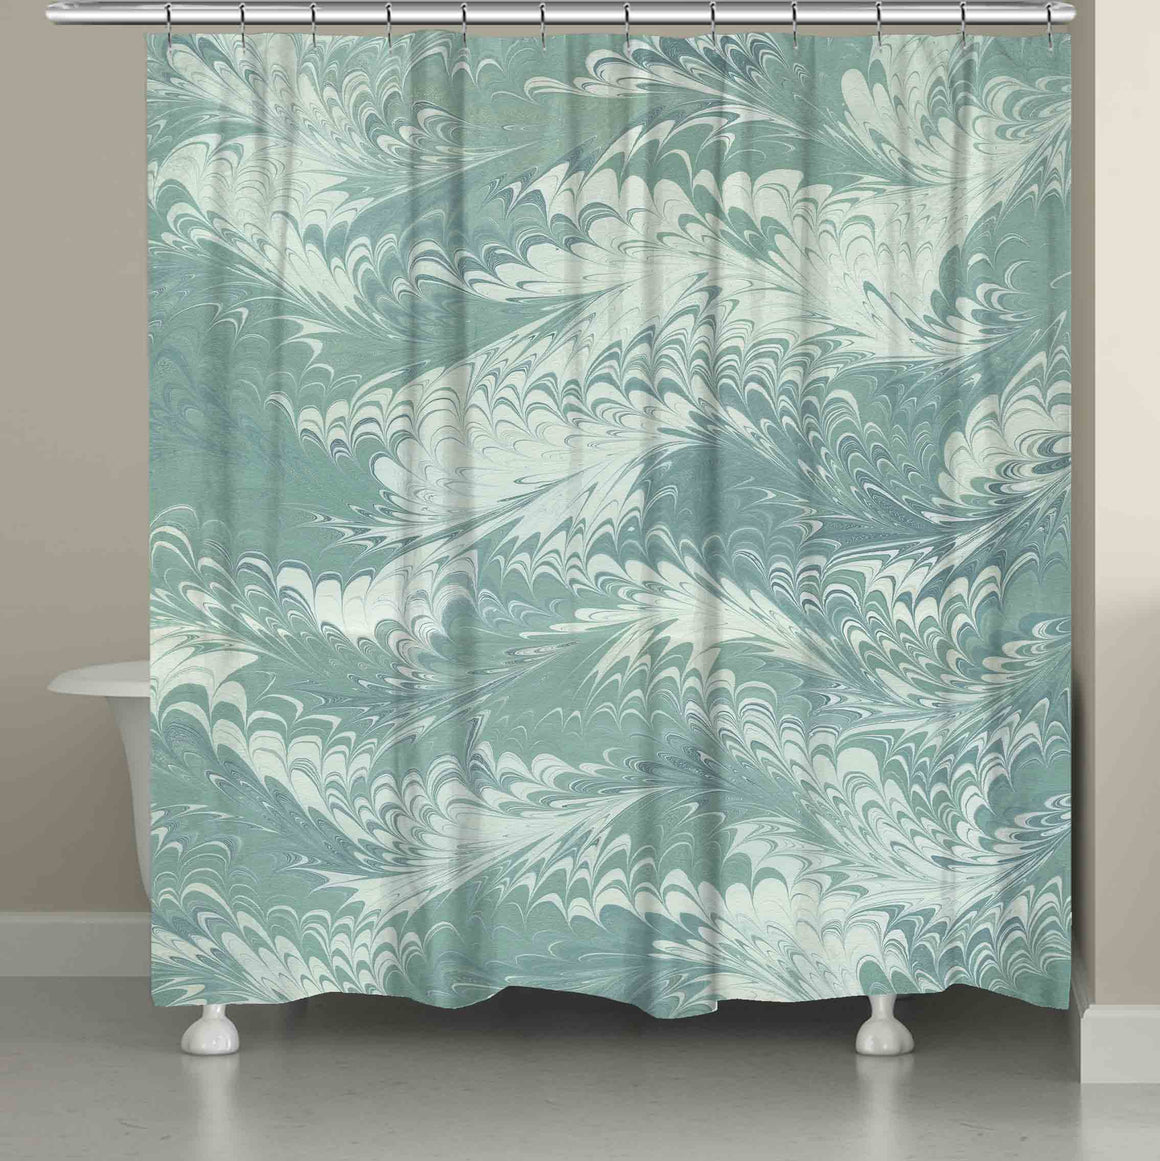 Pastel Mint Marble Shower Curtain